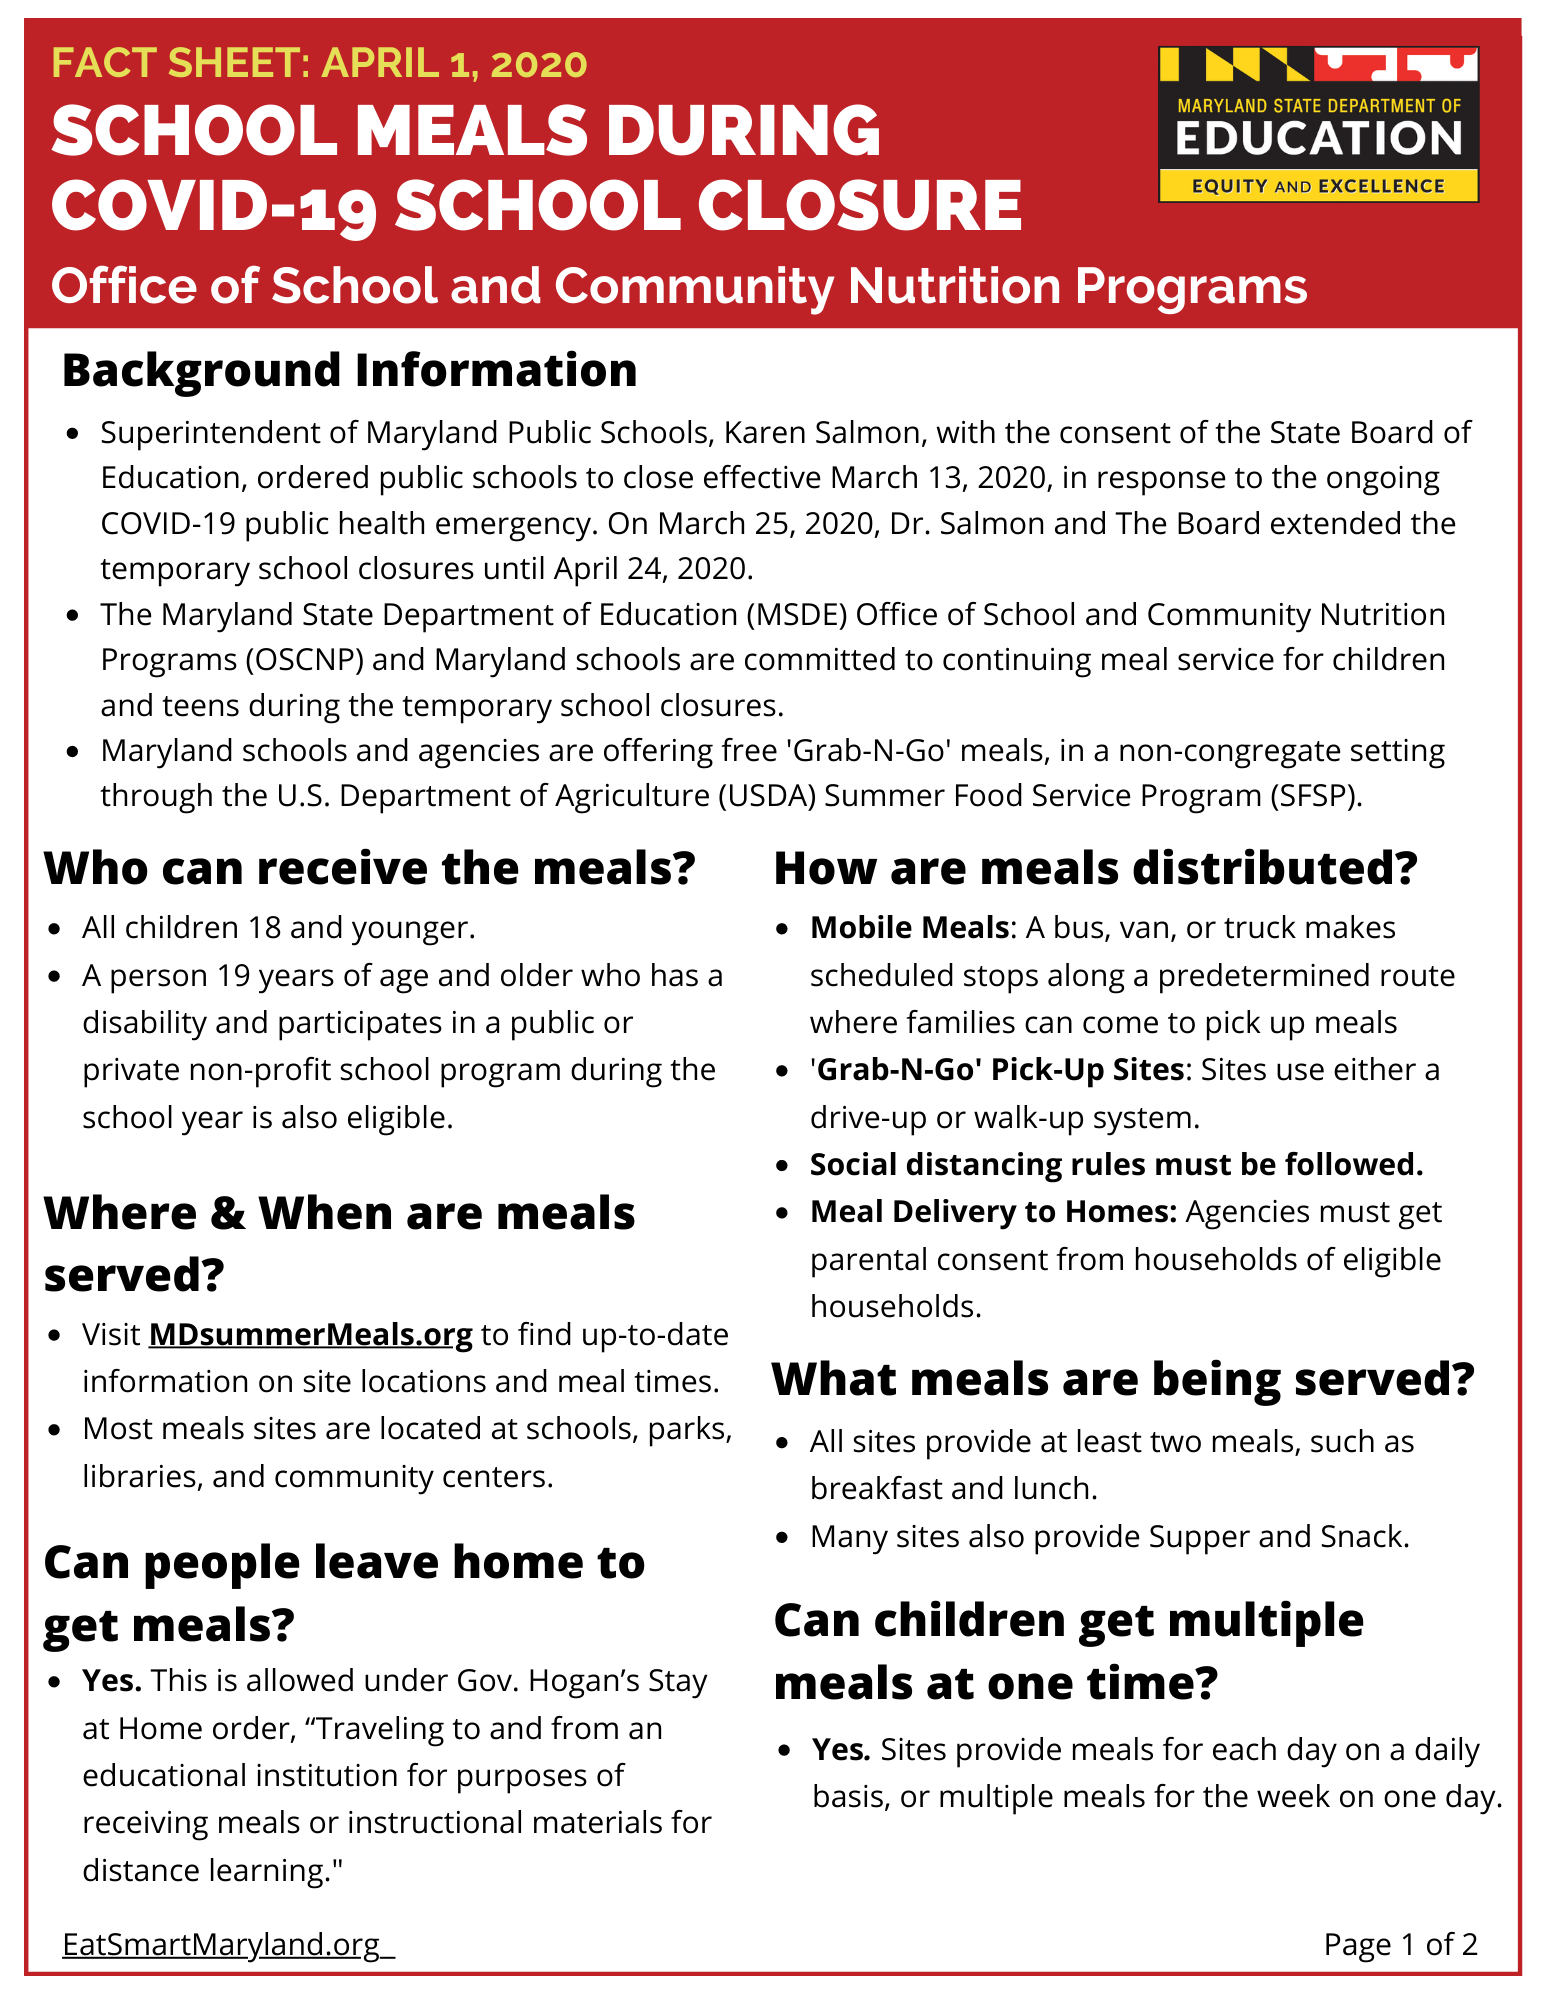 Fact Sheet-School Meals During COVID-19